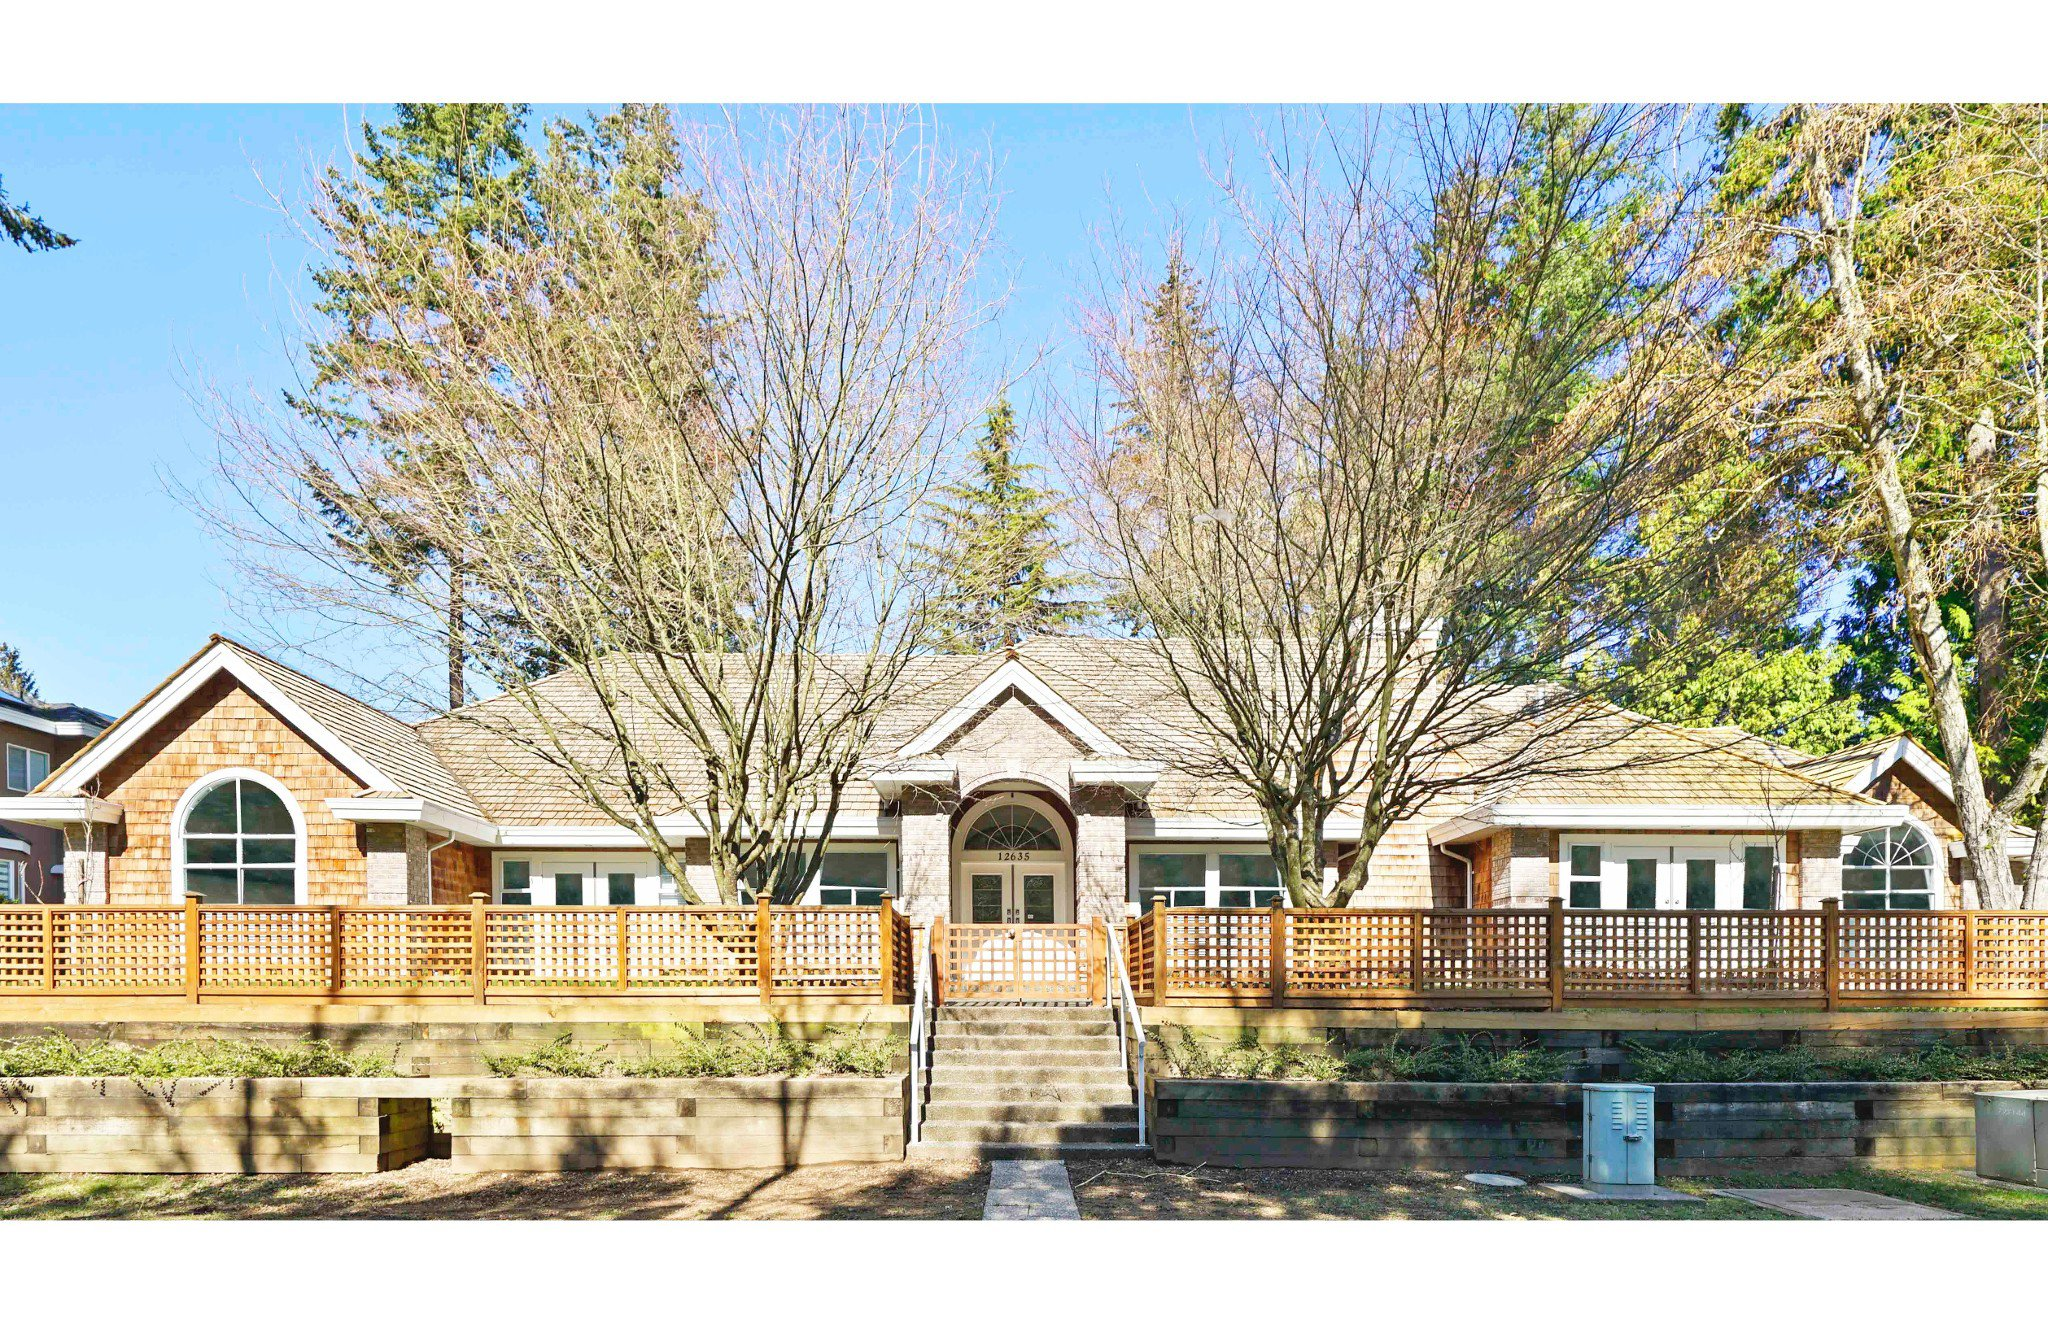 Main Photo: Panorama Ridge, Surrey, Real Estate, Surrey Realtor, rancher